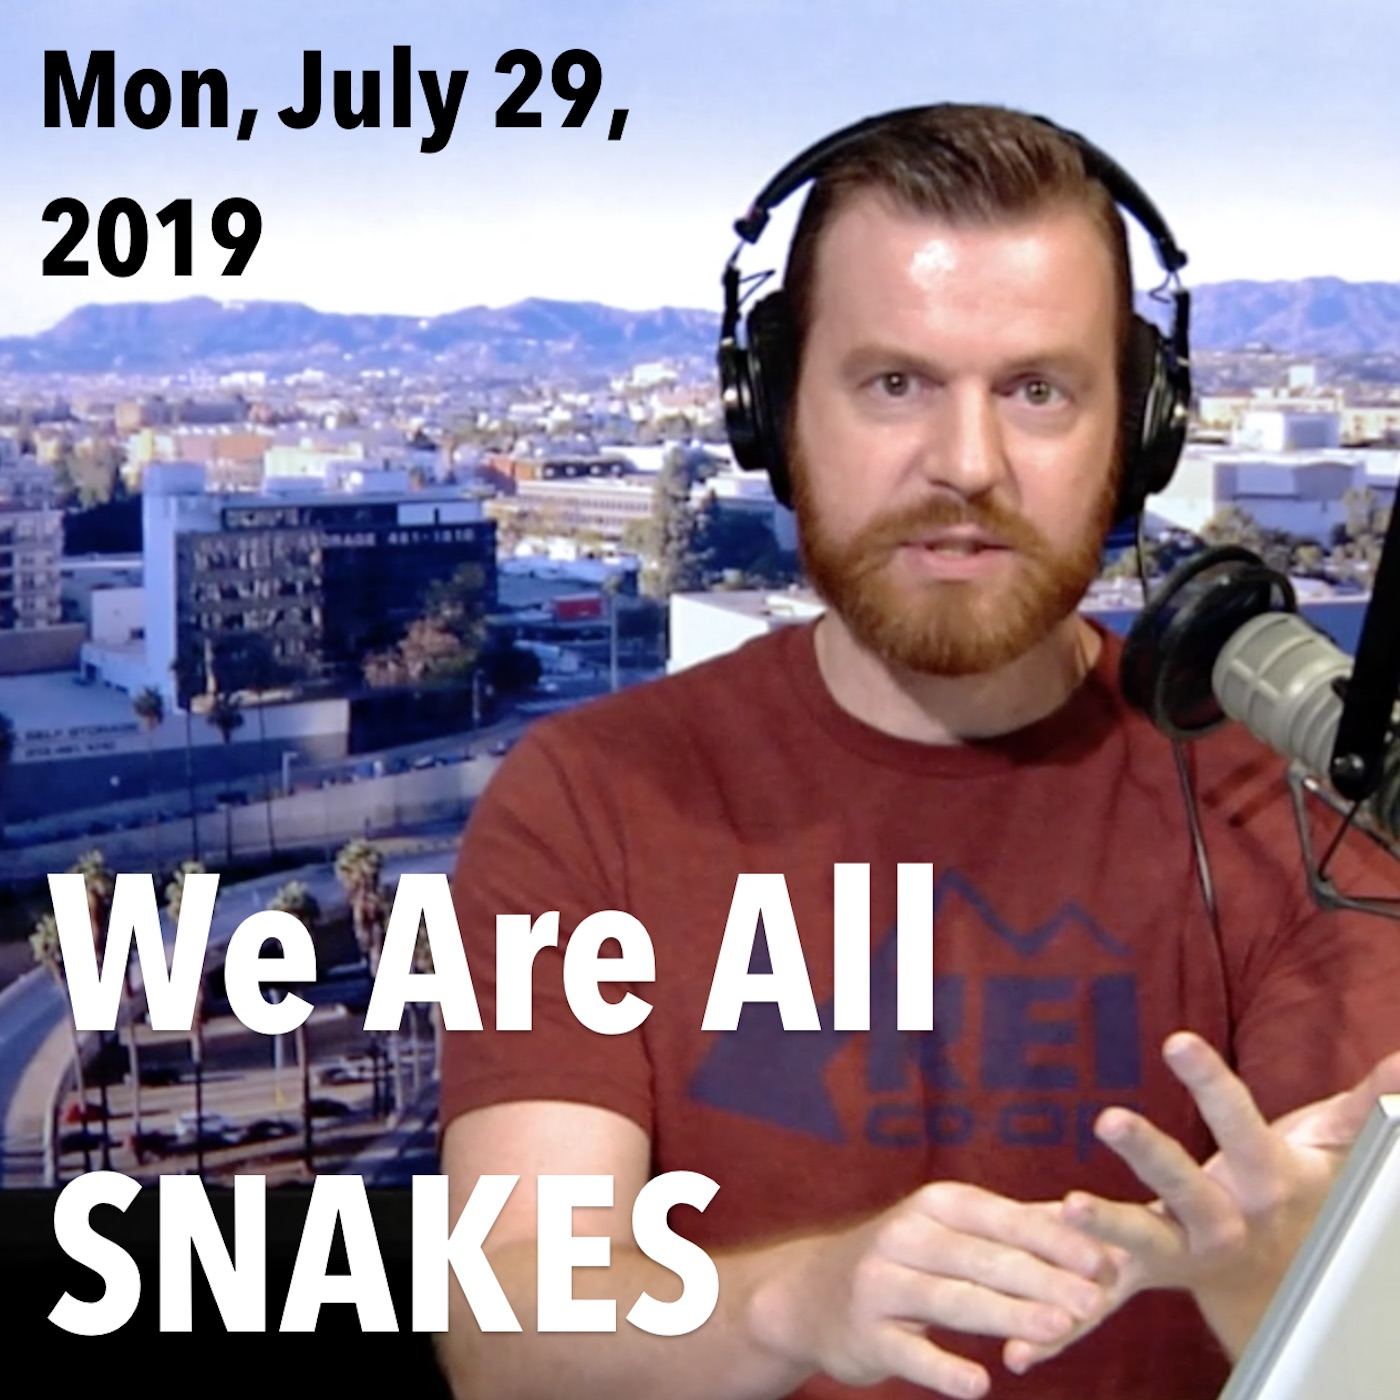 Square thumbnail from The Hake Report Monday, July 29, 2019: We Are All SNAKES